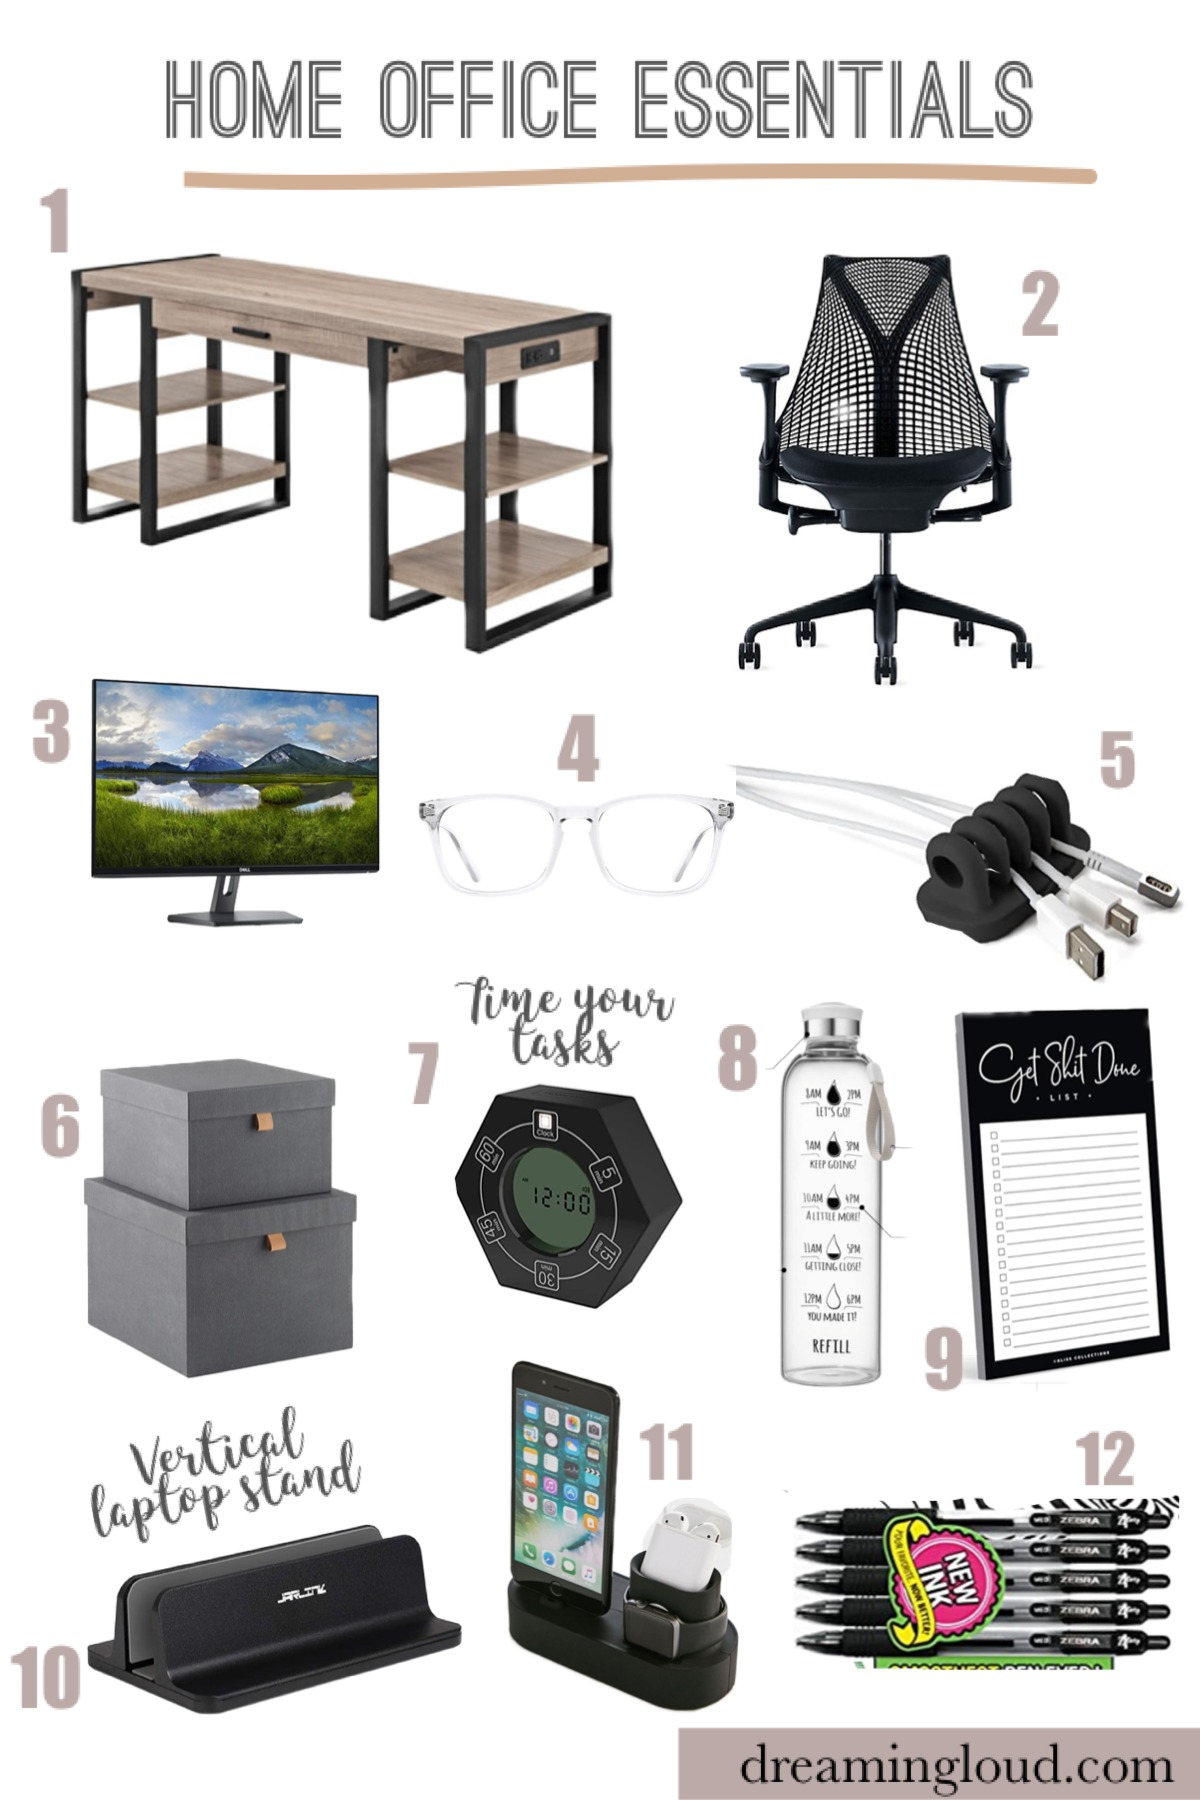 Home office essentials featured by top MI lifestyle blogger, Dreaming Loud.